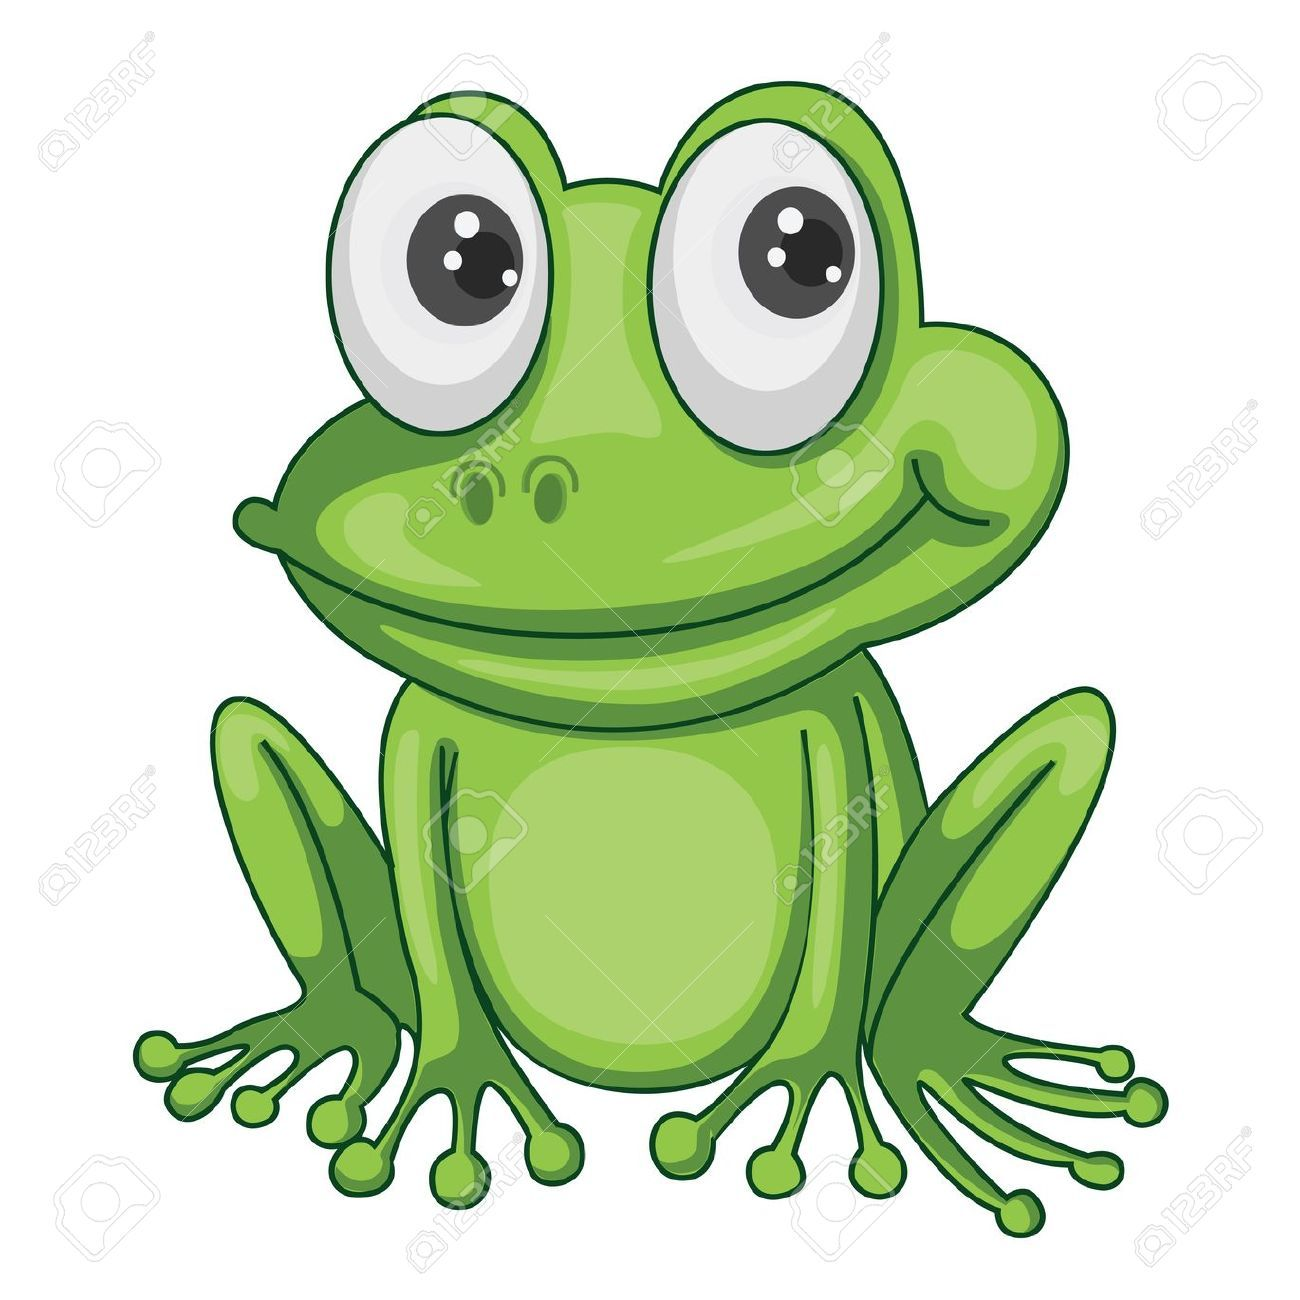 1300x1300 Toad Cliparts, Stock Vector And Royalty Free Toad Illustrations